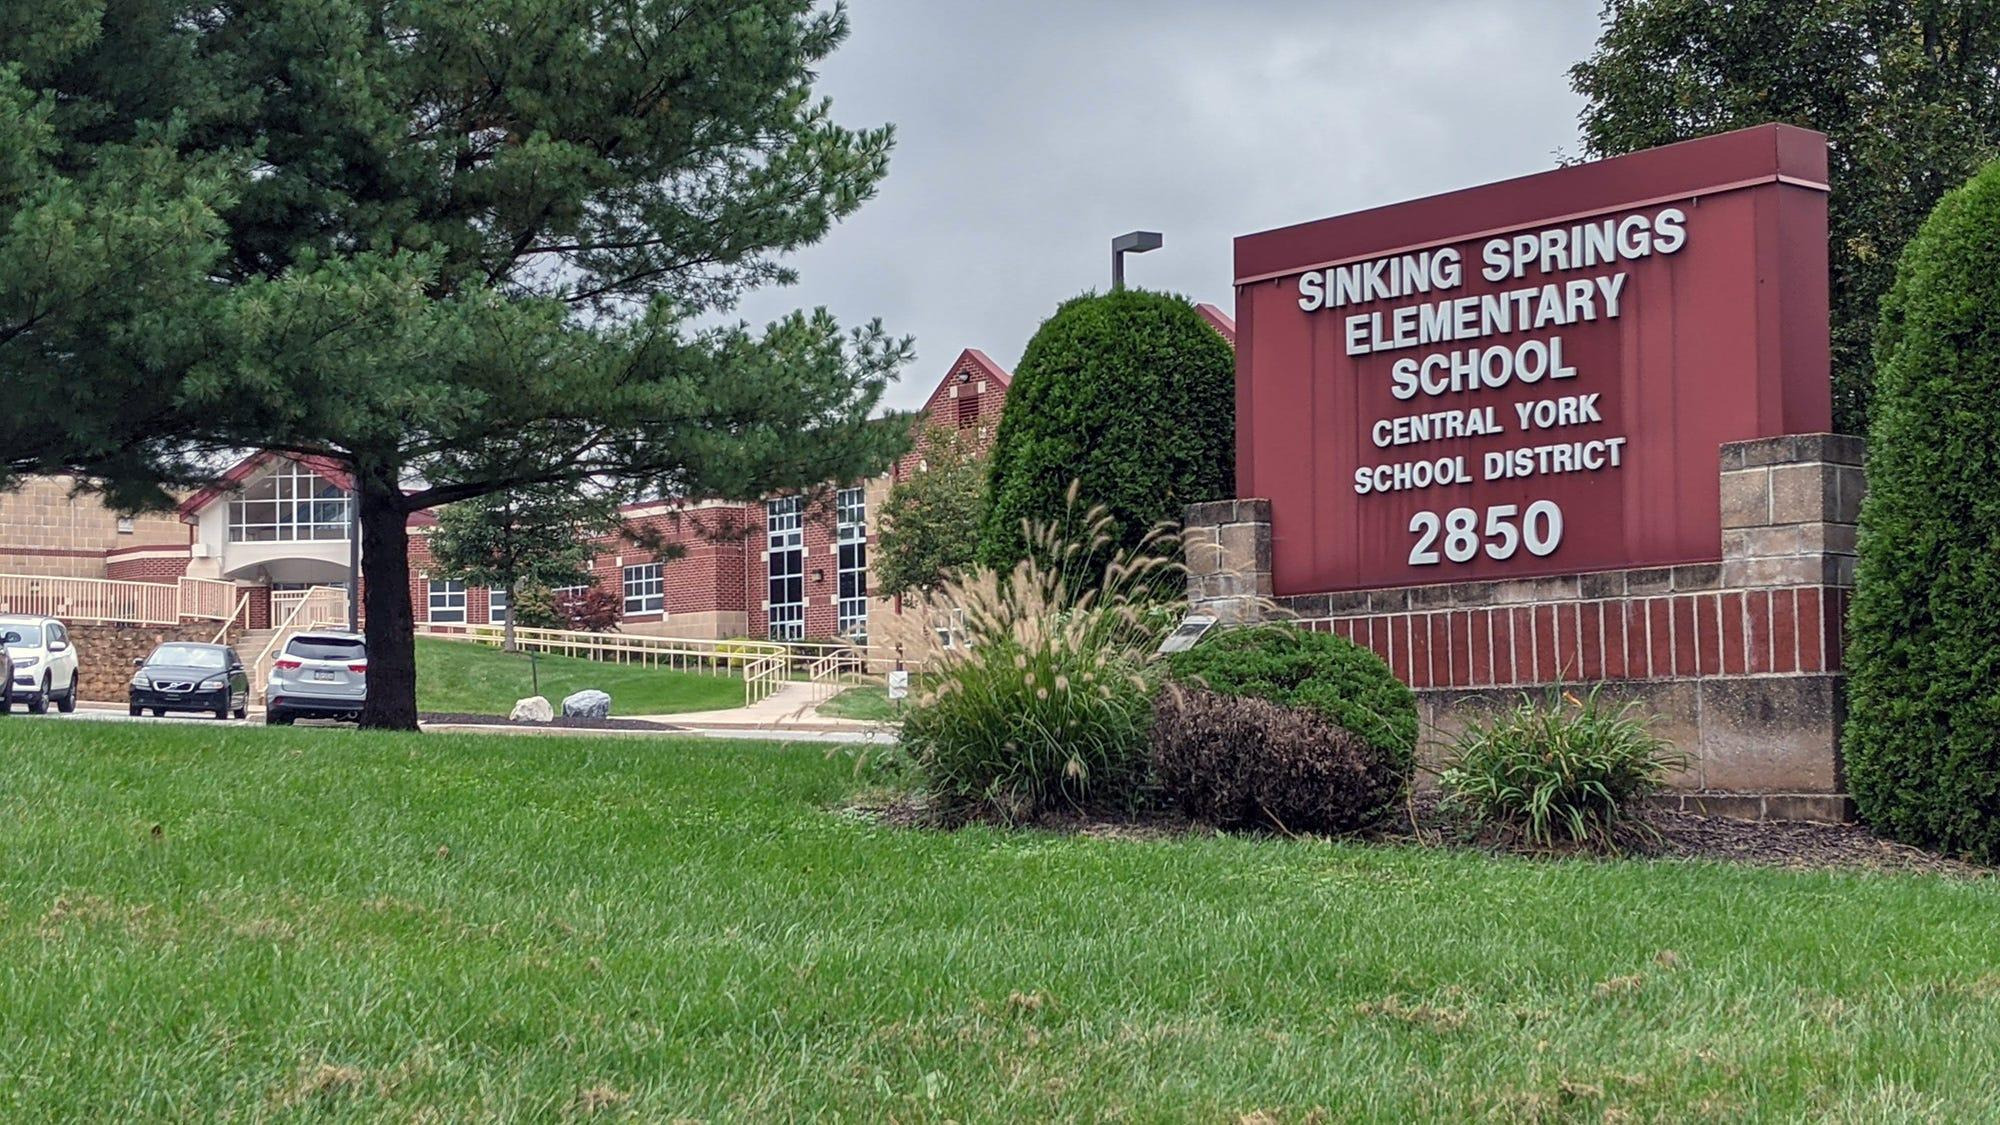 Elementary teacher threatened to shoot people over removal of COVID-19 barrier, police say